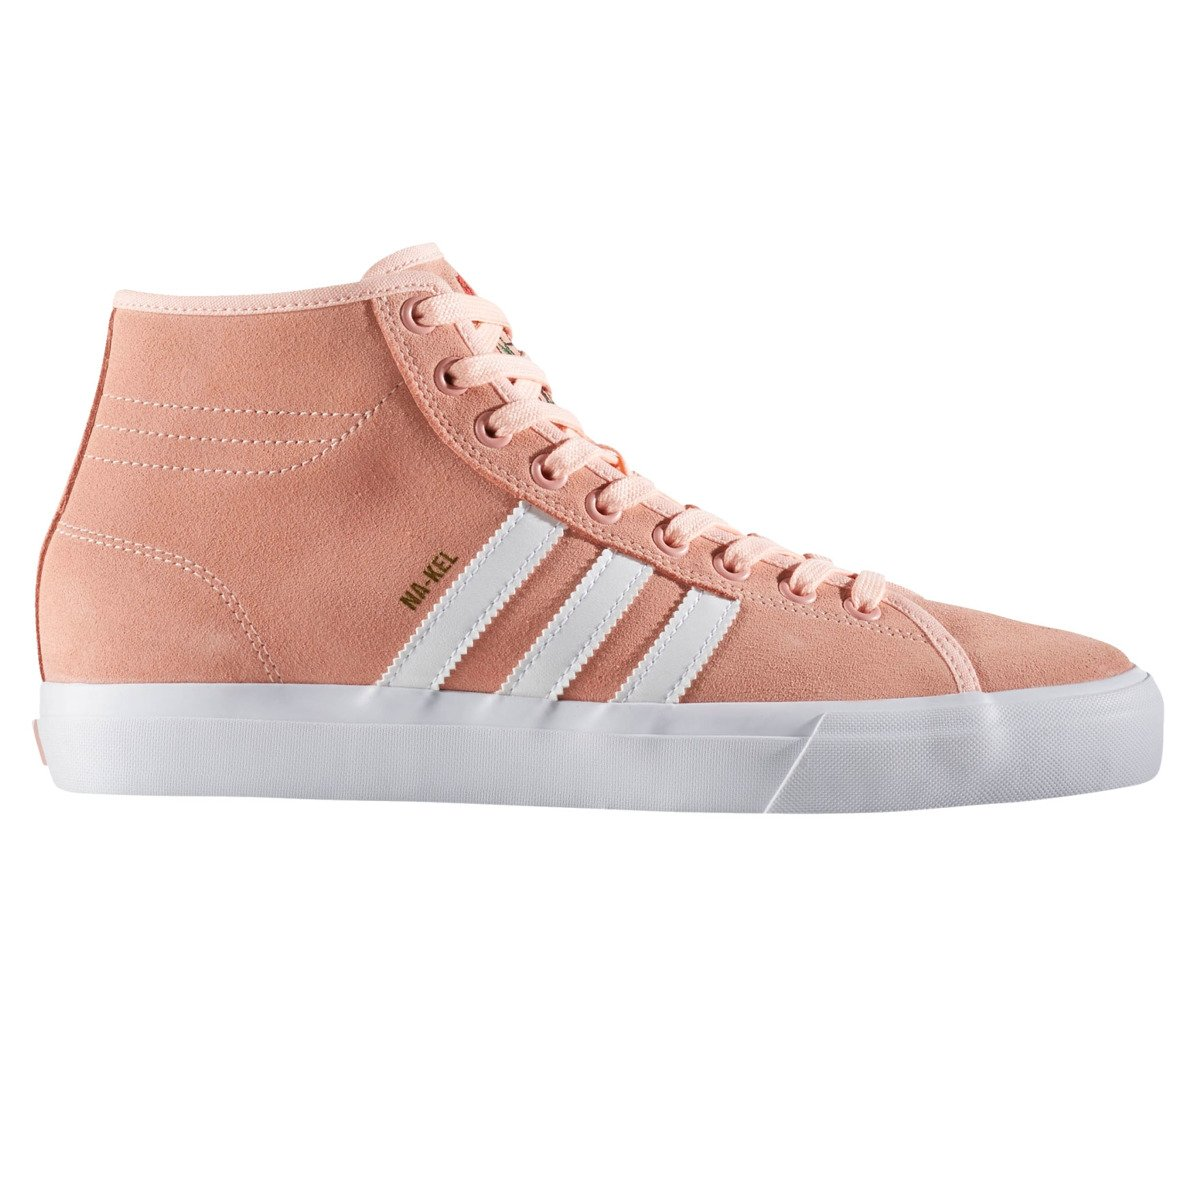 bcb5d18338ebc shoes adidas skateboarding matchcourt high rx hazcor/ftwwht/hazcor pink |  Shoes \ Adidas Skateboarding SALE \ Sale 50% -70% \ Shoes Brands \ Adidas  ...